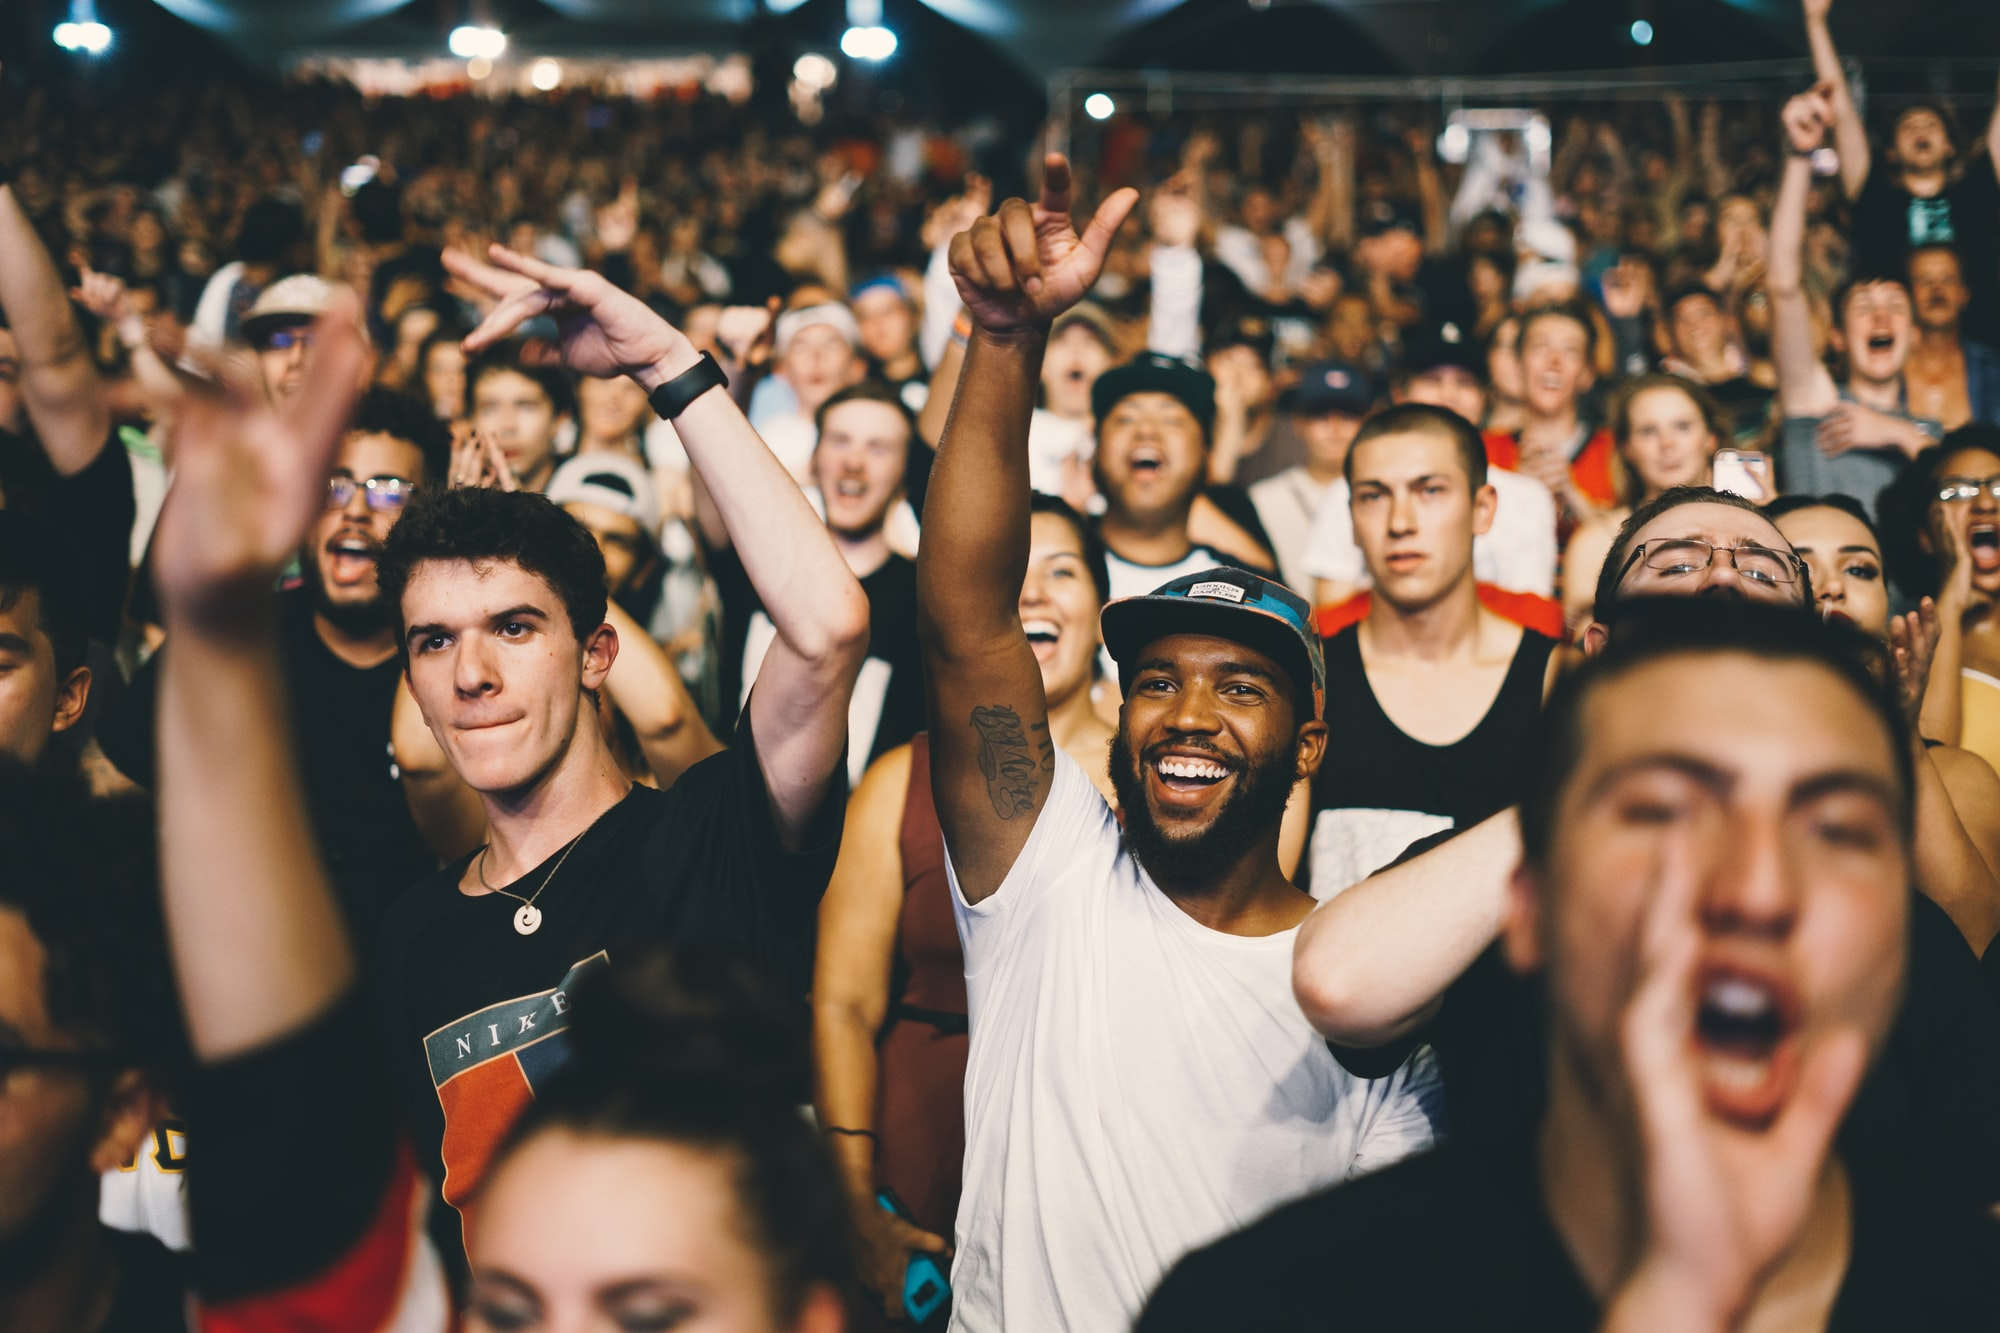 How to Find Your Audience as a Startup